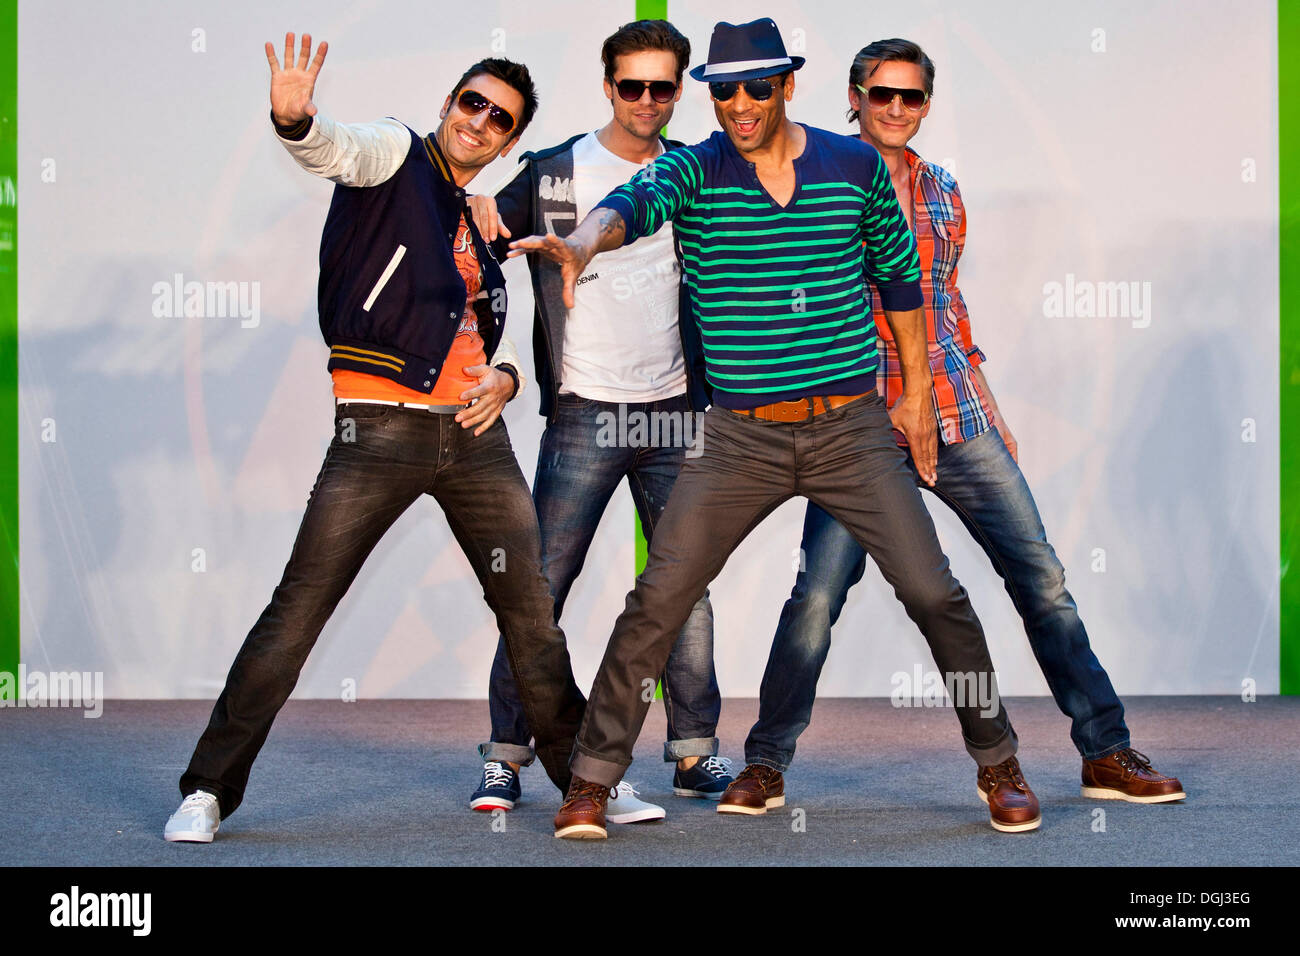 Four male models posing on stage - Stock Image